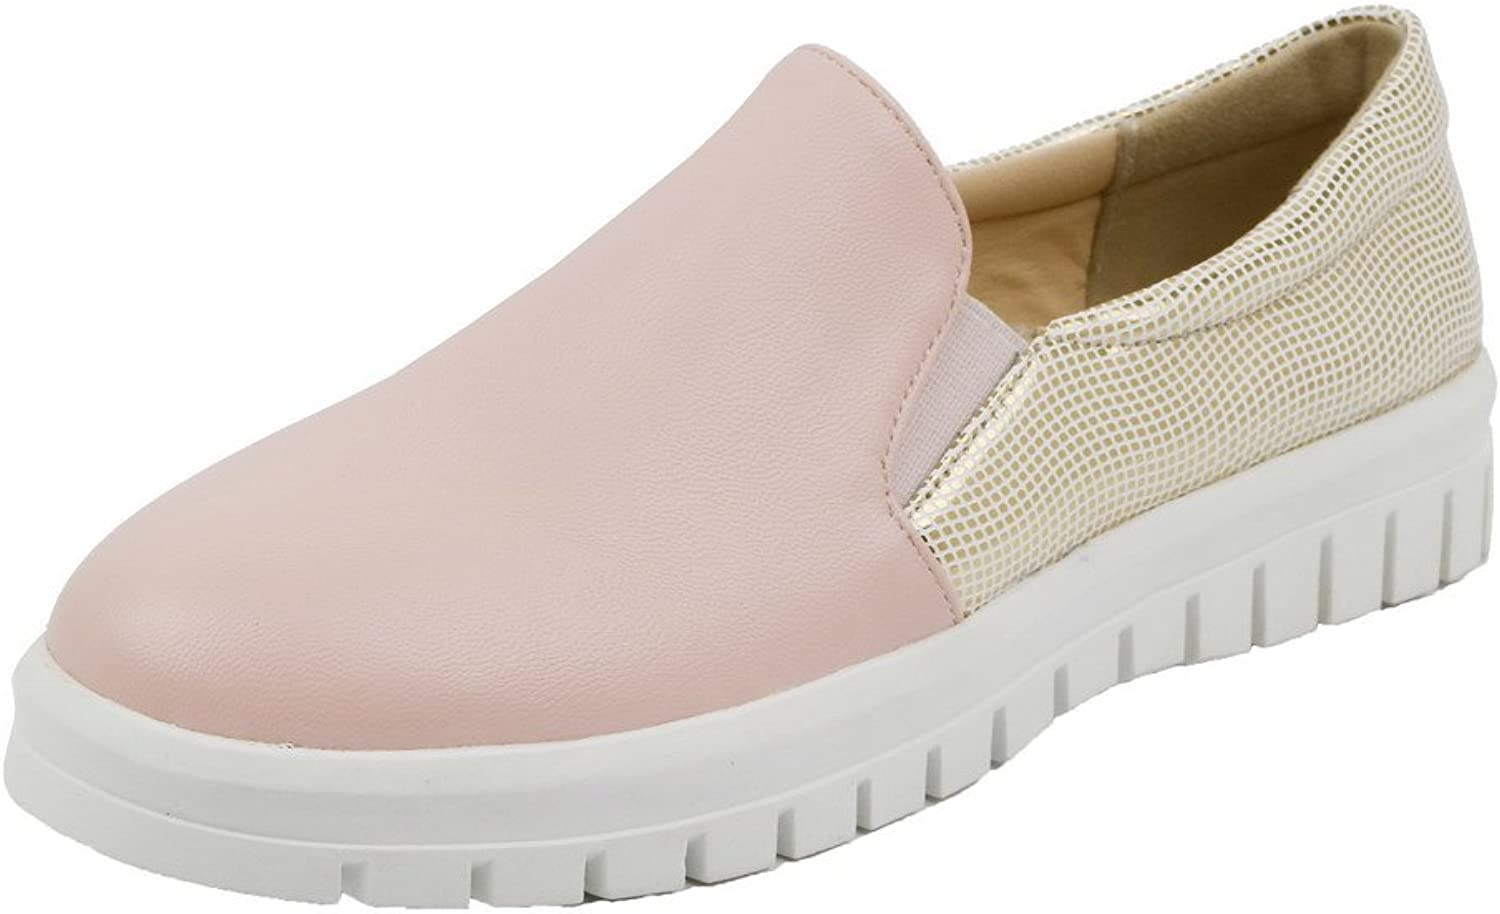 WeiPoot Women's Assorted color PU Low-Heels Pull-On Pumps-shoes